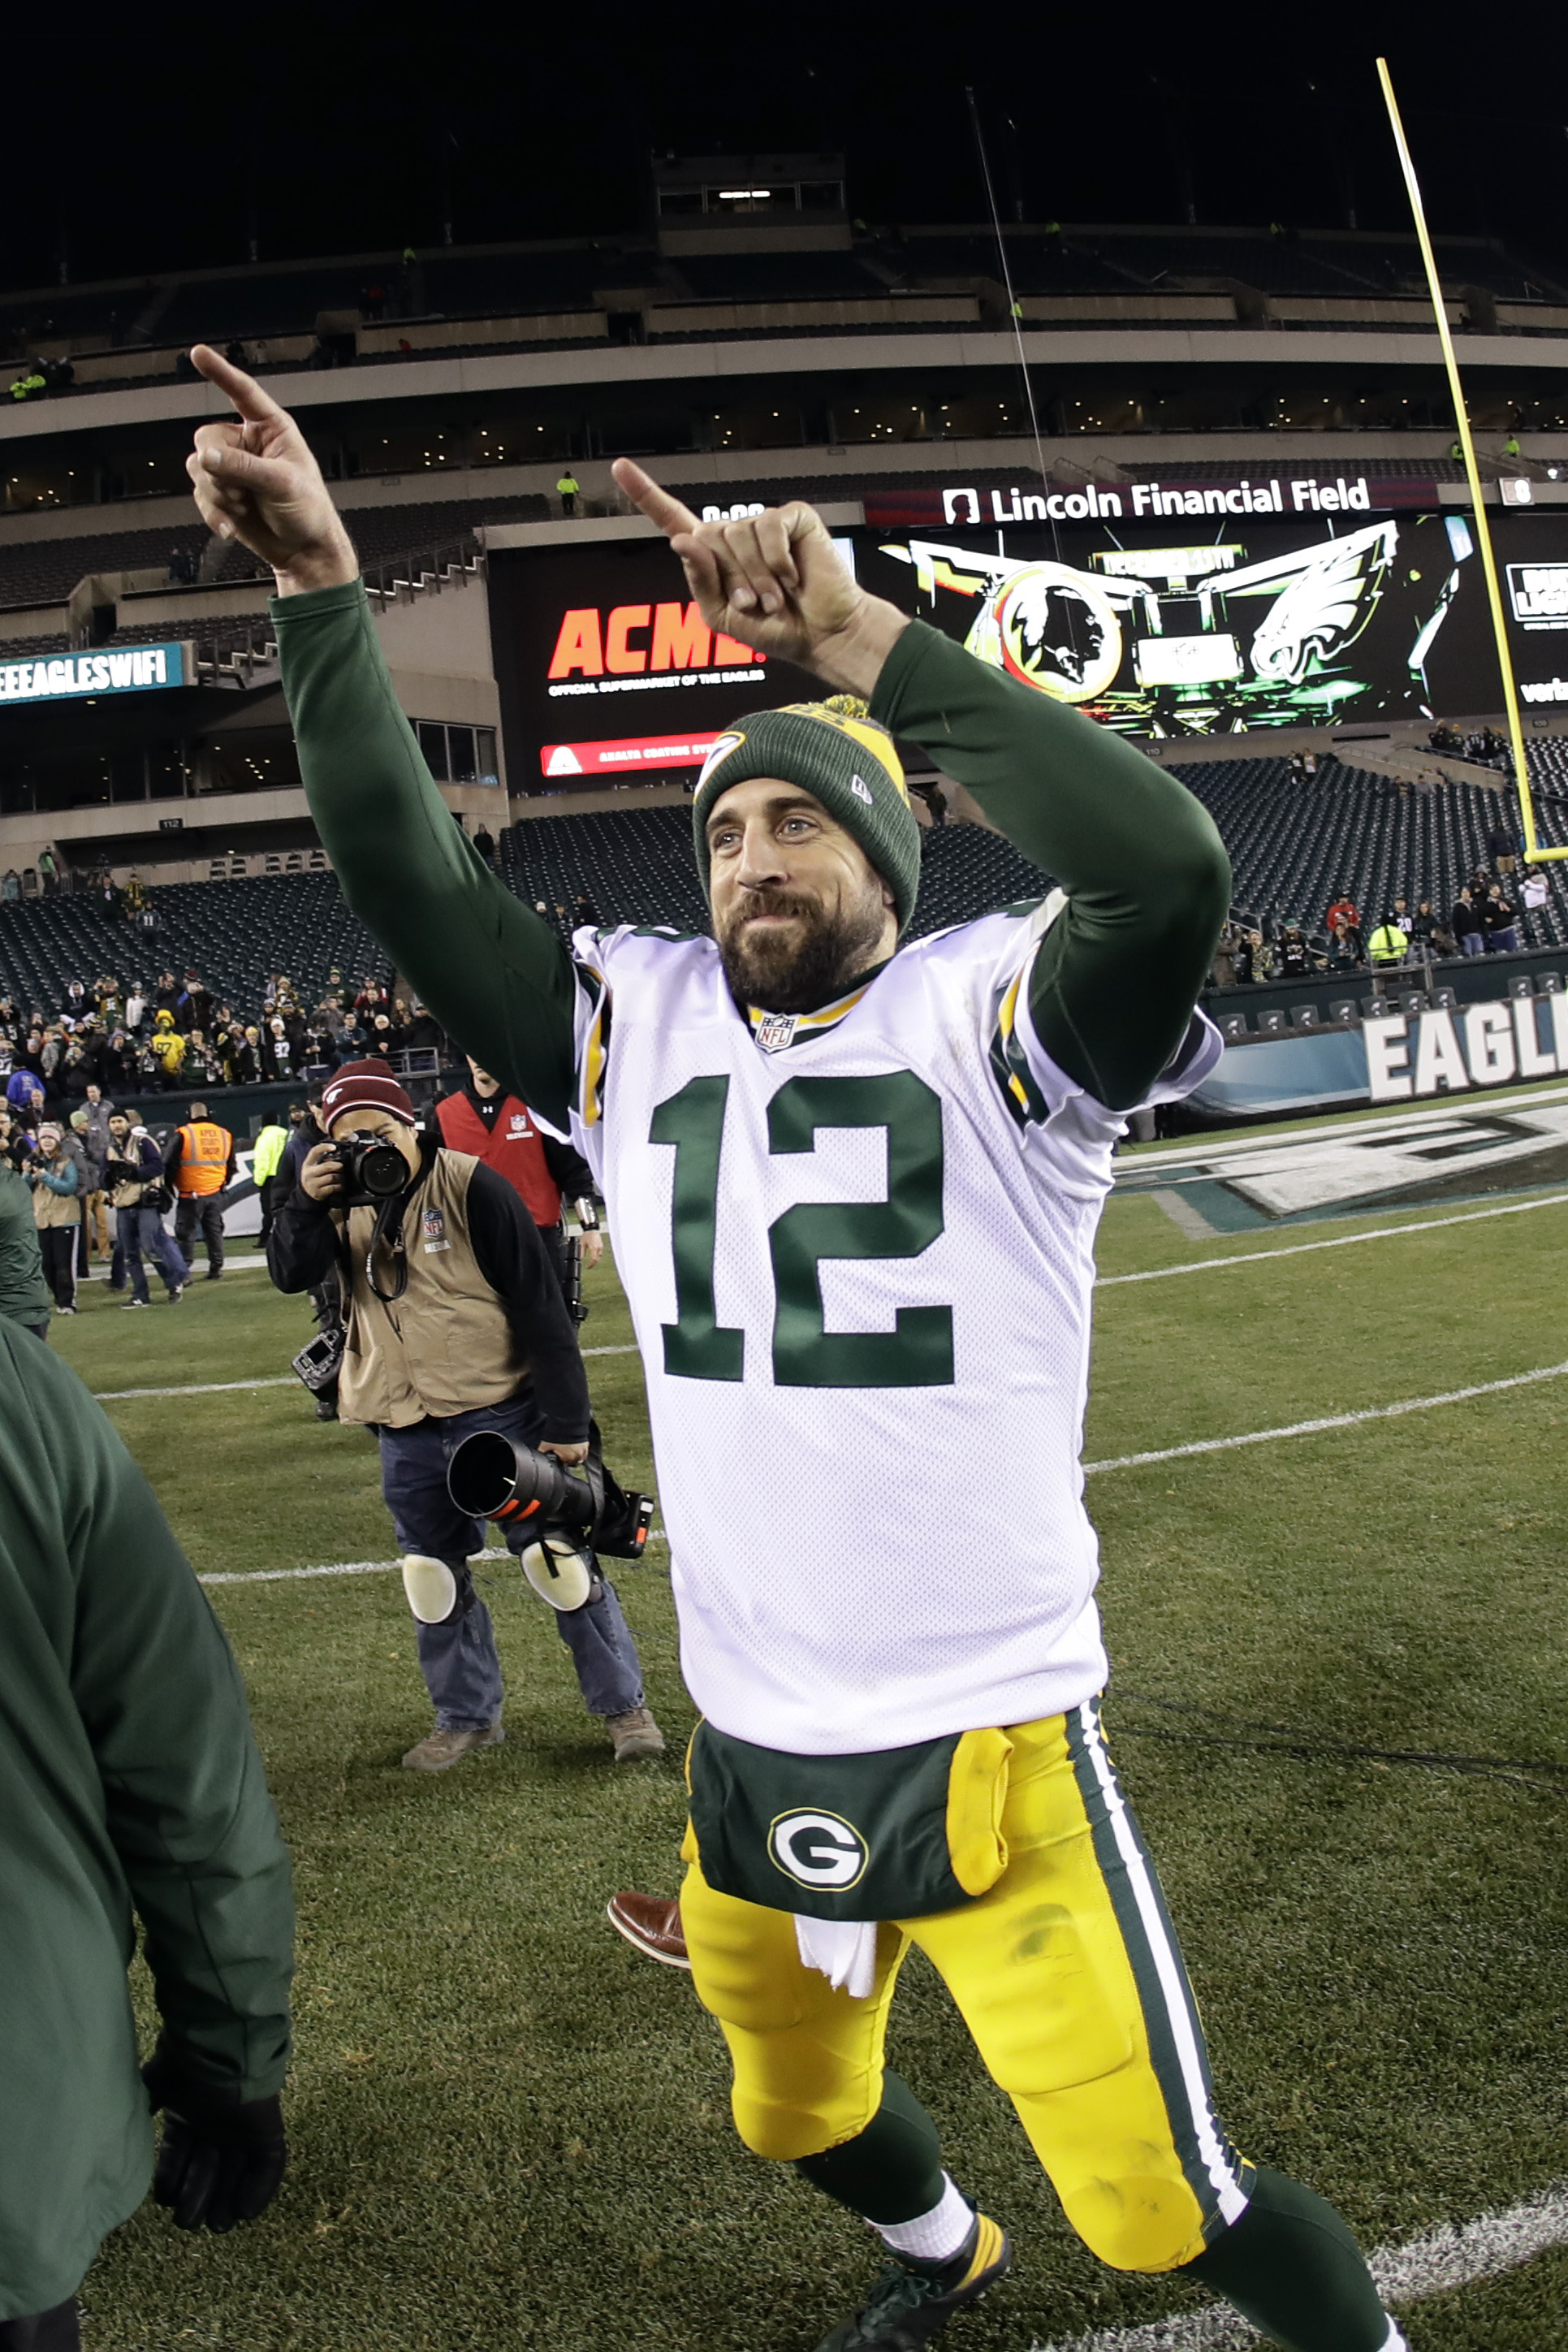 Green Bay Packers' Aaron Rodgers celebrates after an NFL football game against the Philadelphia Eagles, Monday, Nov. 28, 2016, in Philadelphia. Green Bay won 27-13. (AP Photo/Michael Perez)